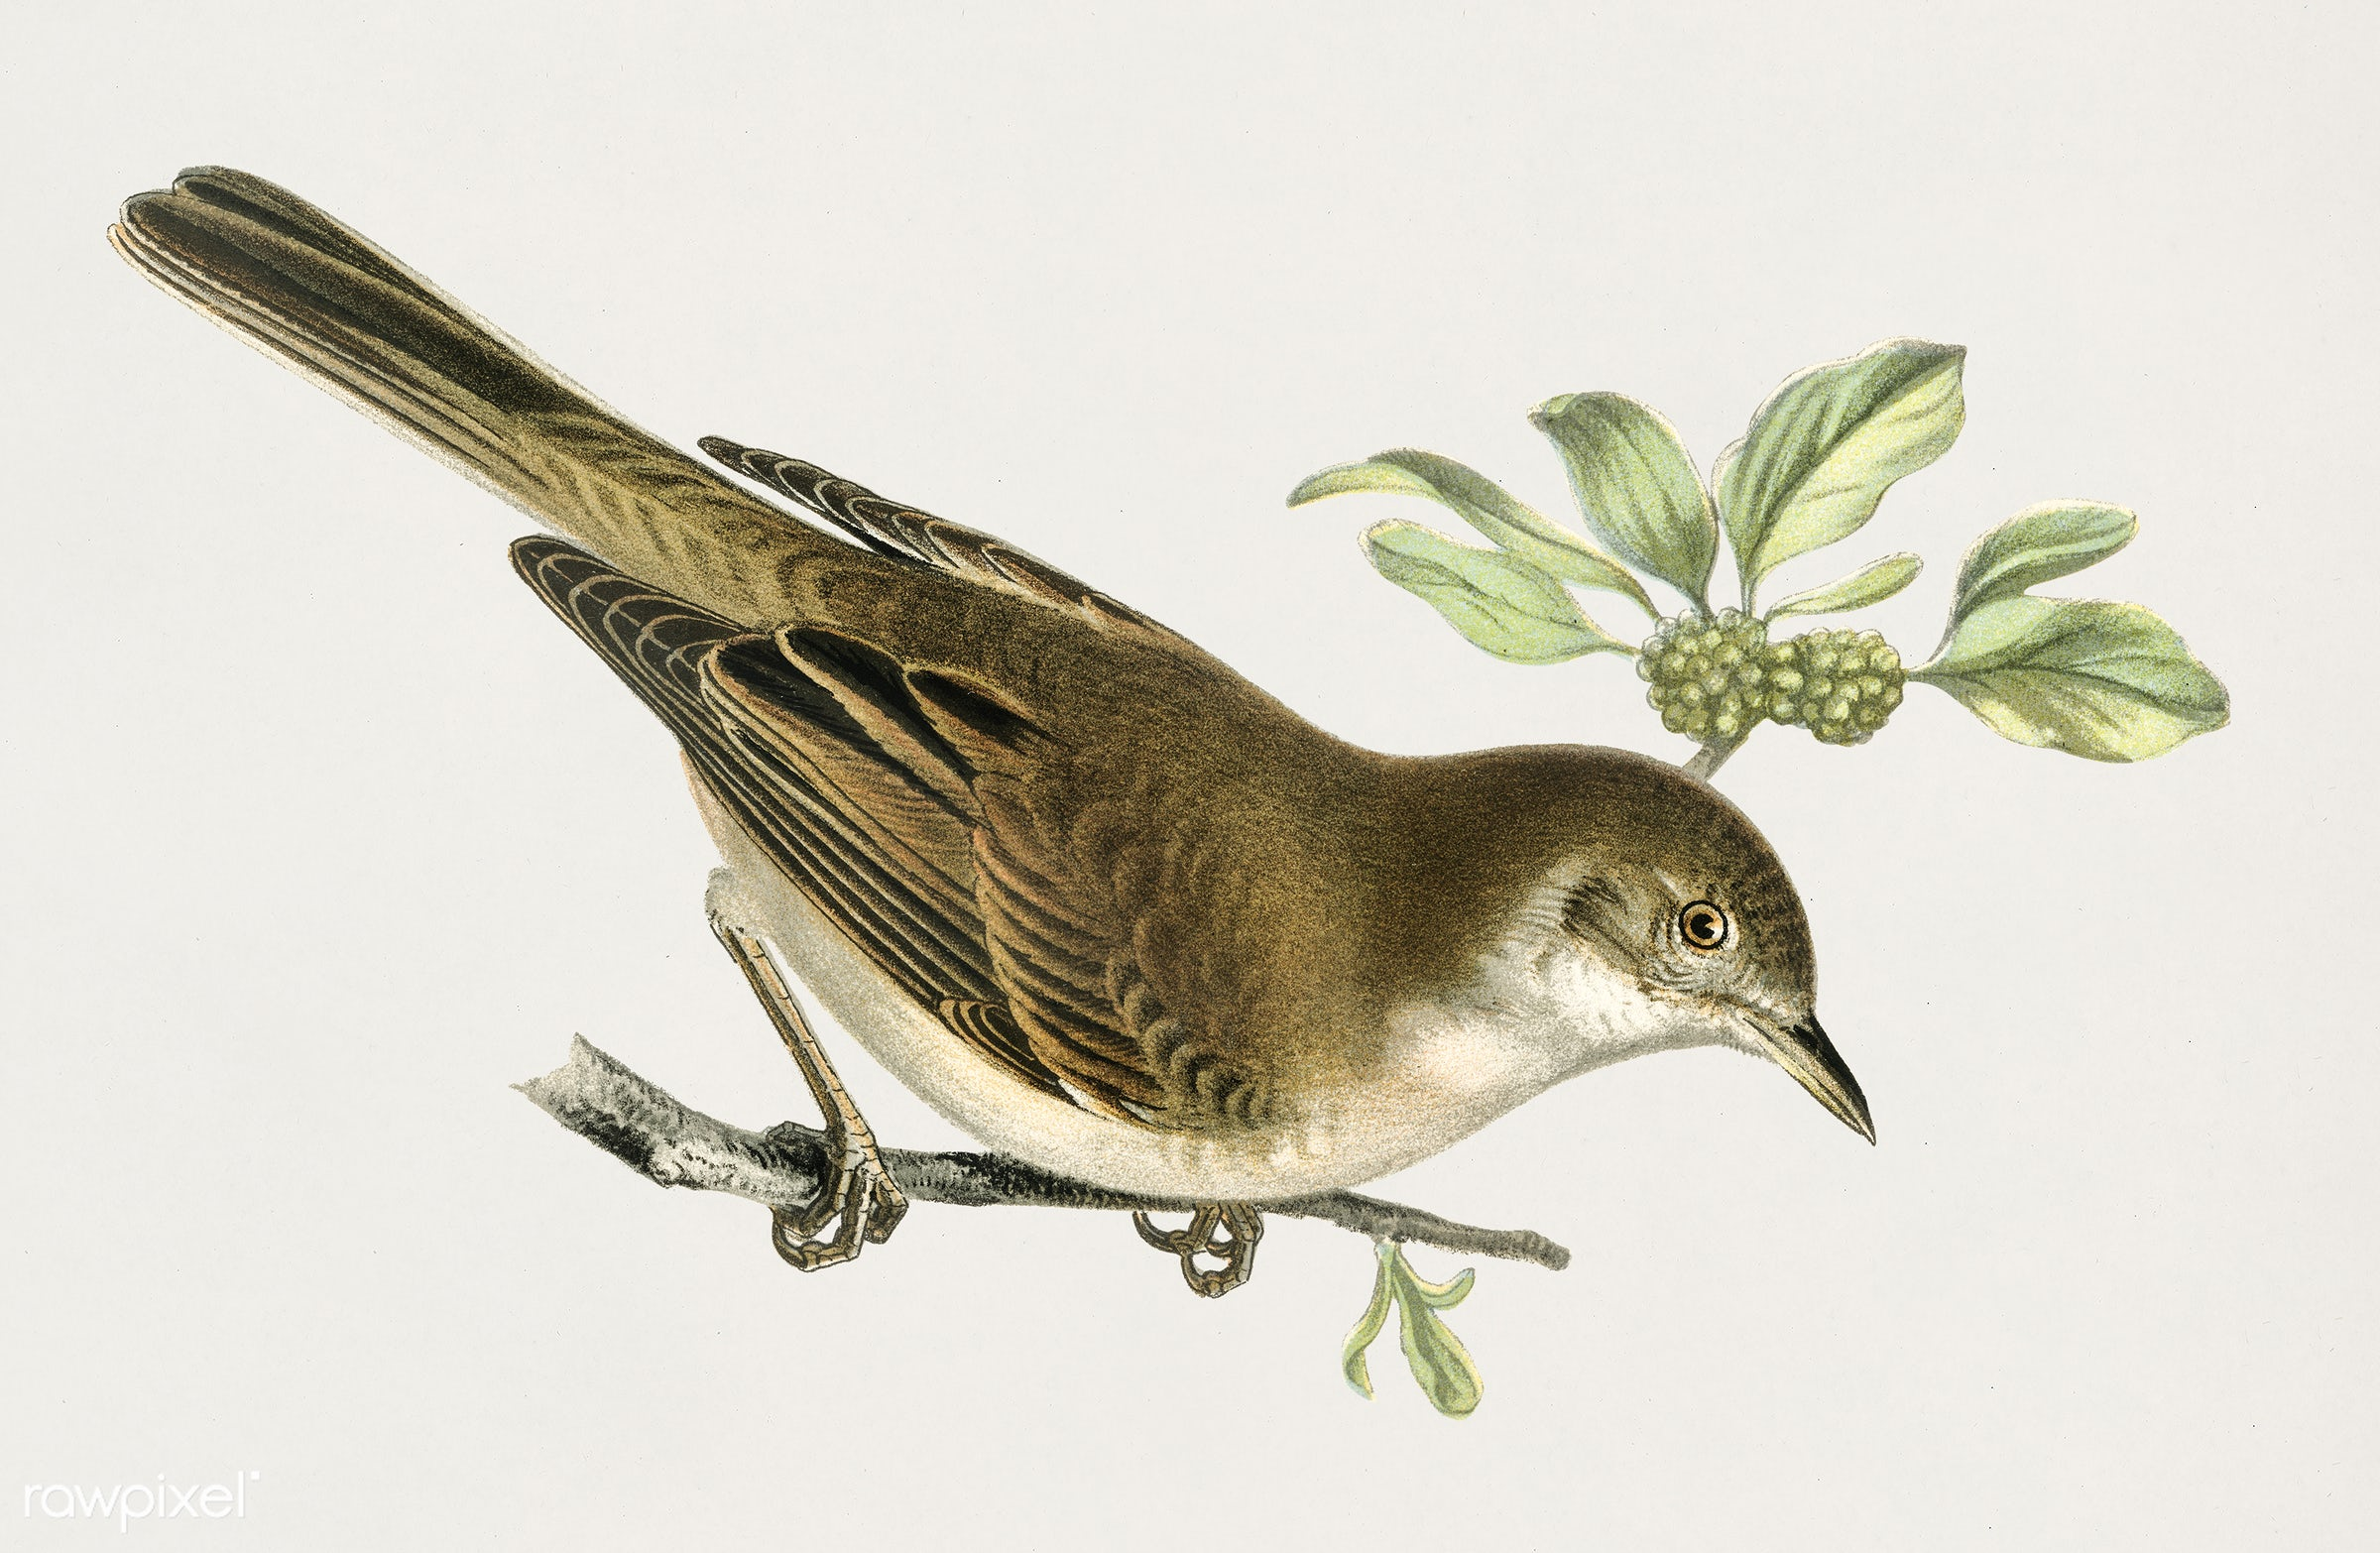 Common whitethroat (Sylvia communis) illustrated by the von Wright brothers. Digitally enhanced from our own 1929 folio...